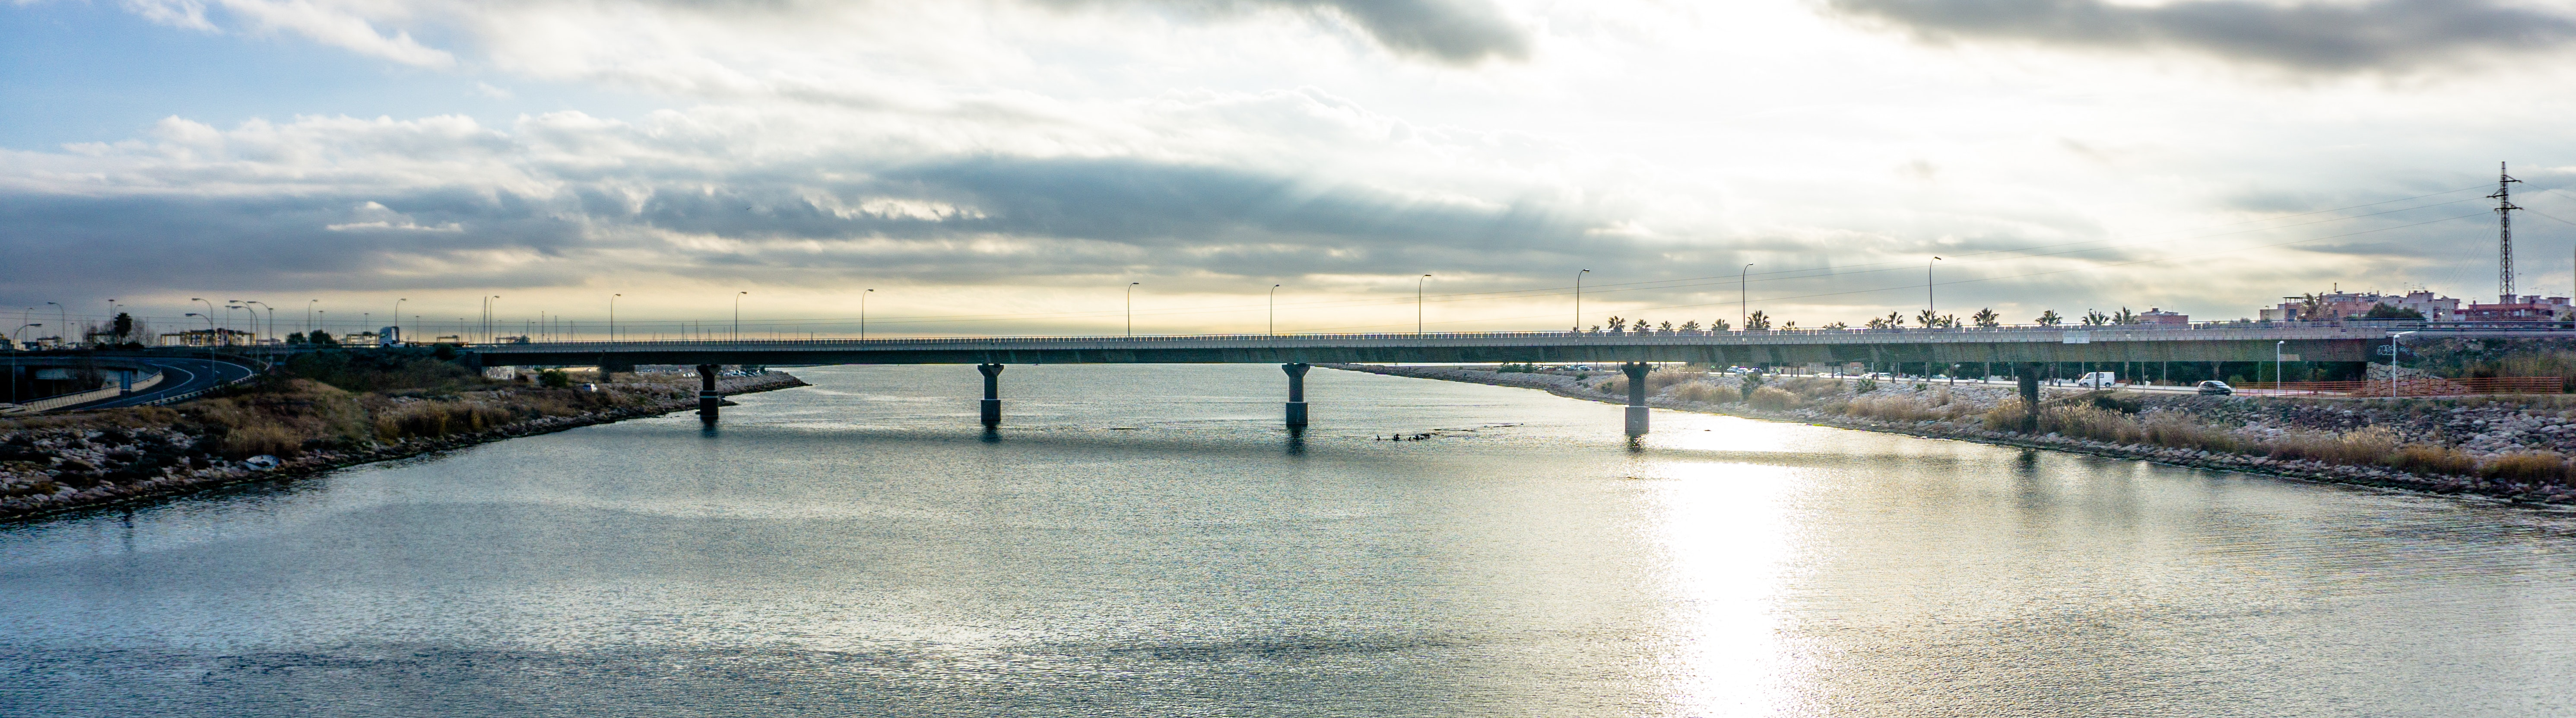 Panoramic Photography of Bridge Under Cloudy Sky, Bay, Reflection, Sunlight, Sea, HQ Photo